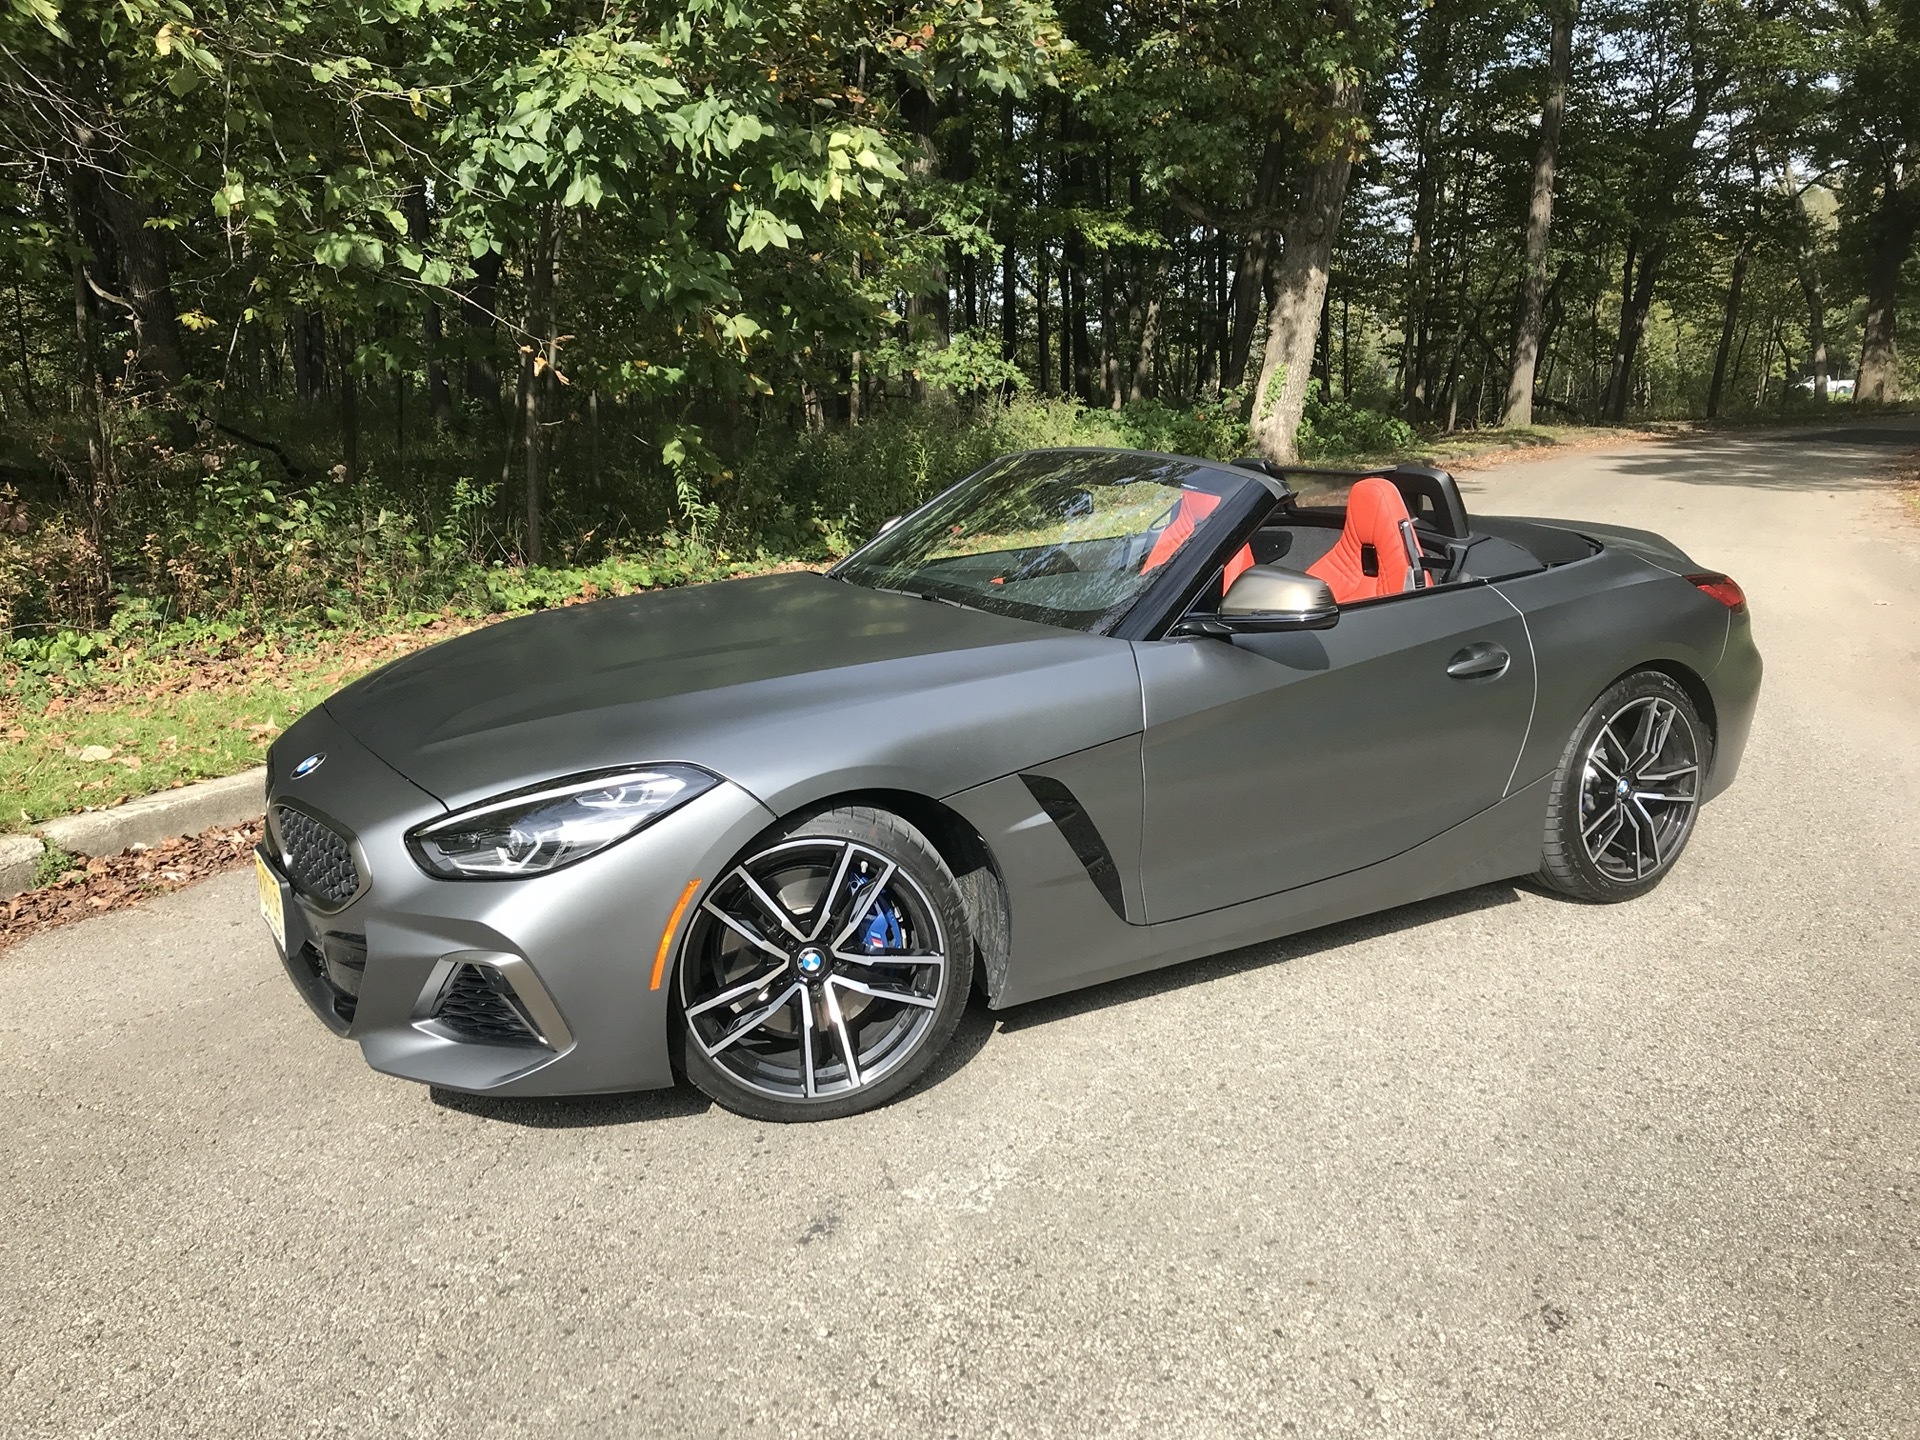 2020 BMW Z4 Roadster Spy Shoot